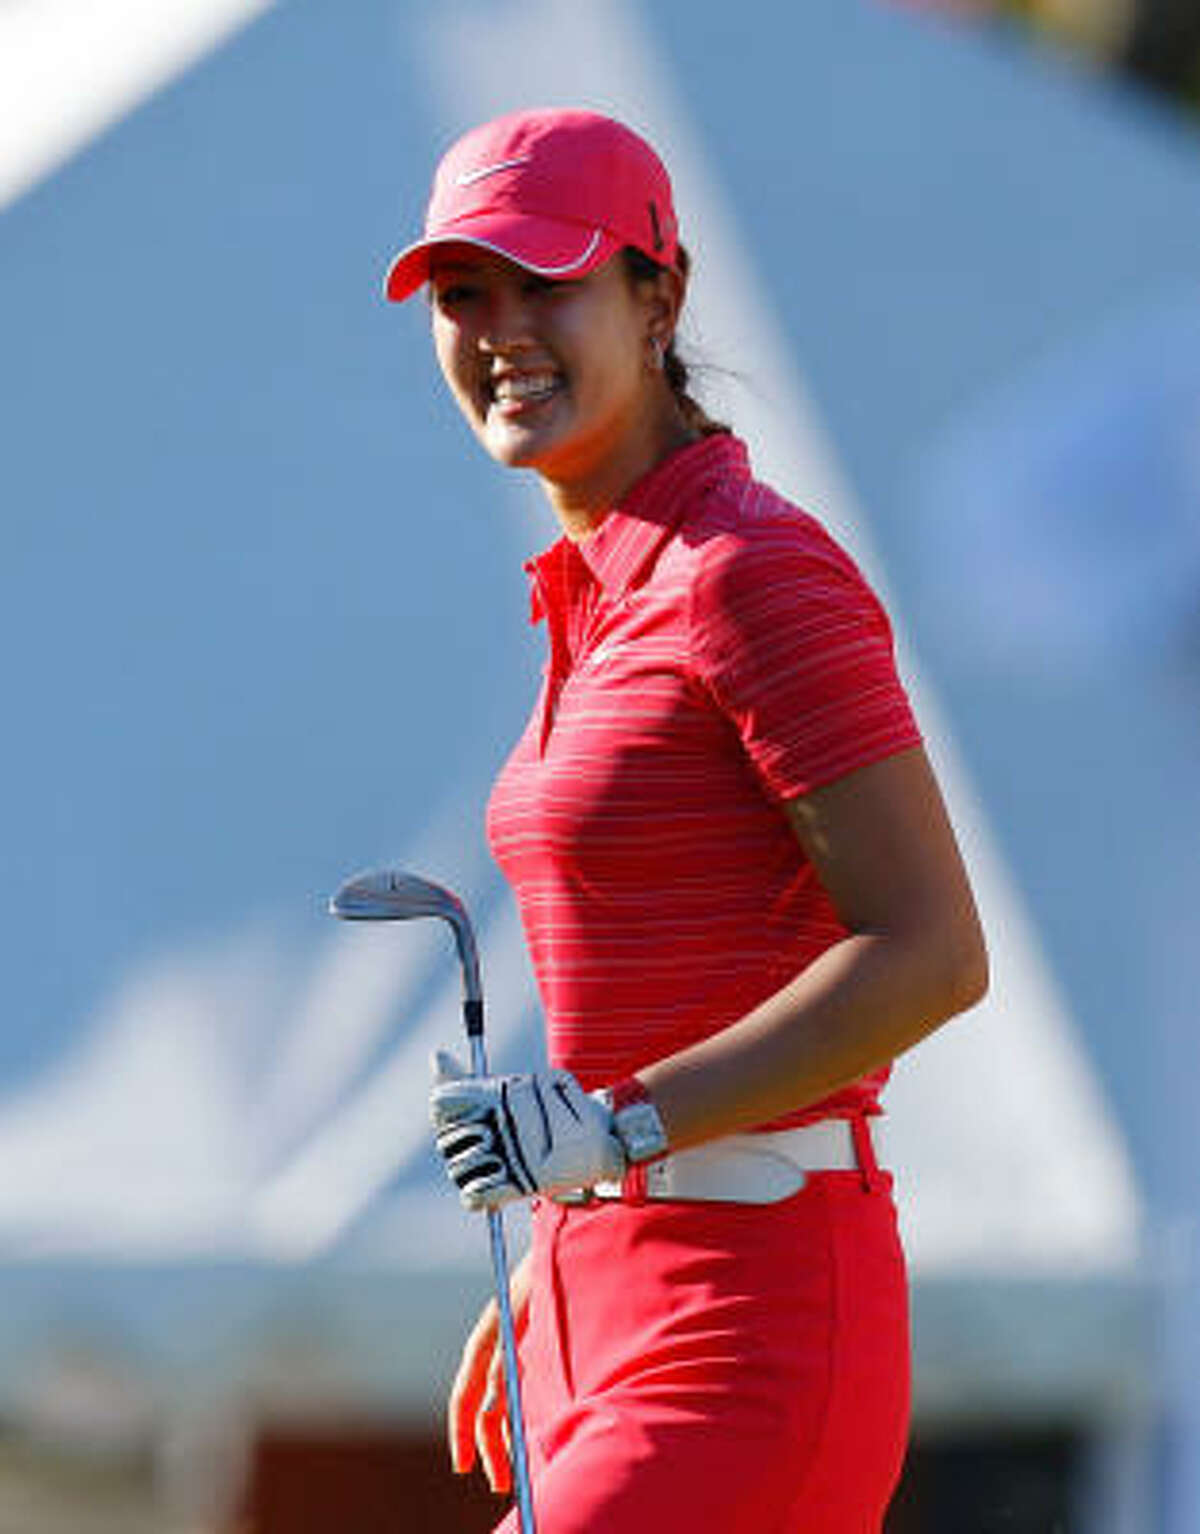 Michelle Wie, sponsored by Nike, is a contemporary dresser, but still wears matched styles such as this Nike Tech skort and Nike mesh striped polo. She often accessorizes with large earrings and necklaces.